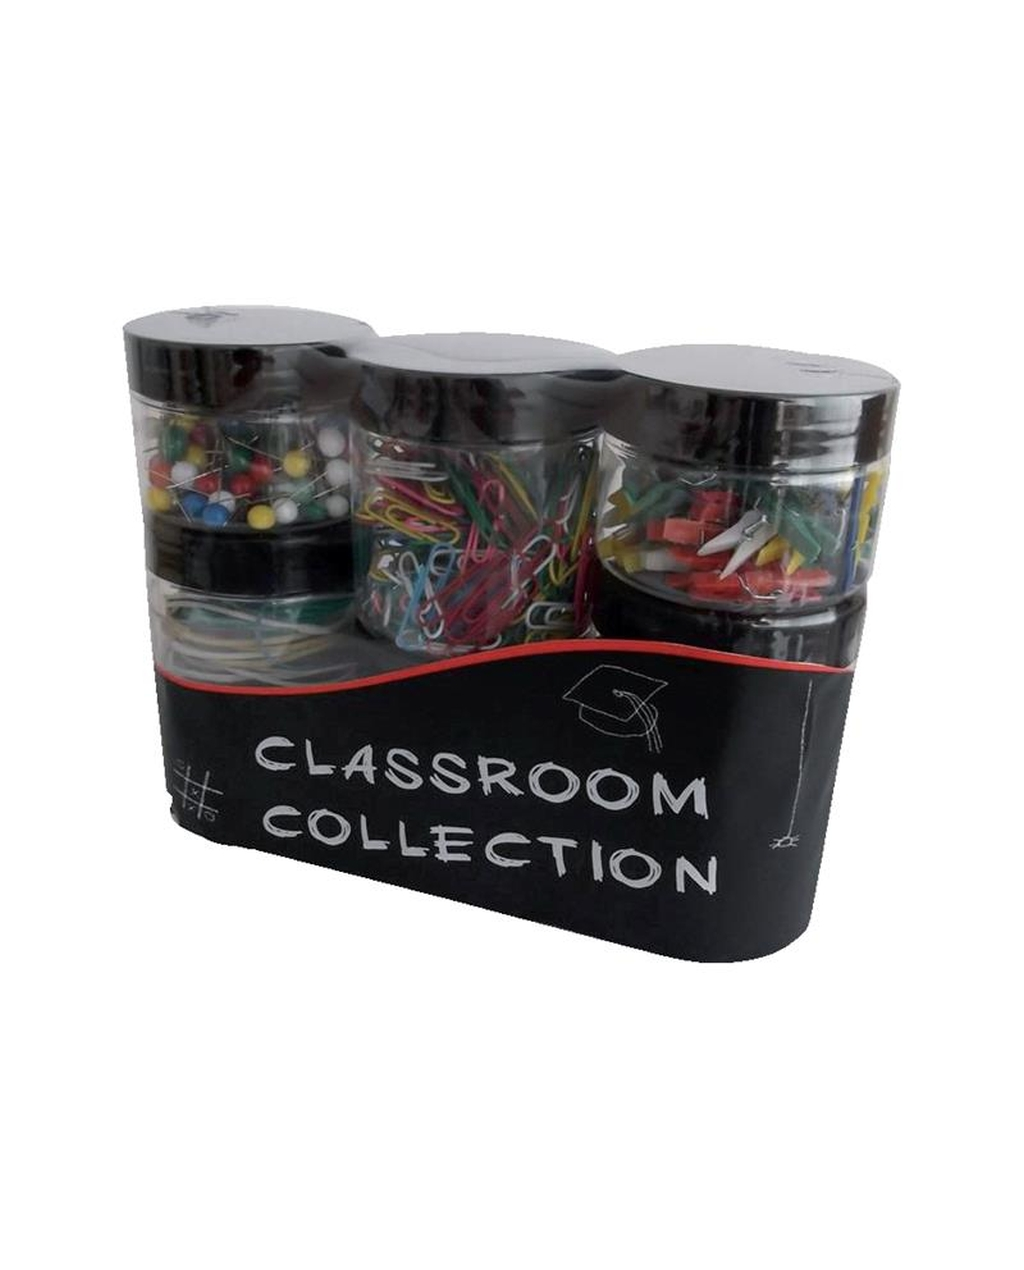 Classroom Collection